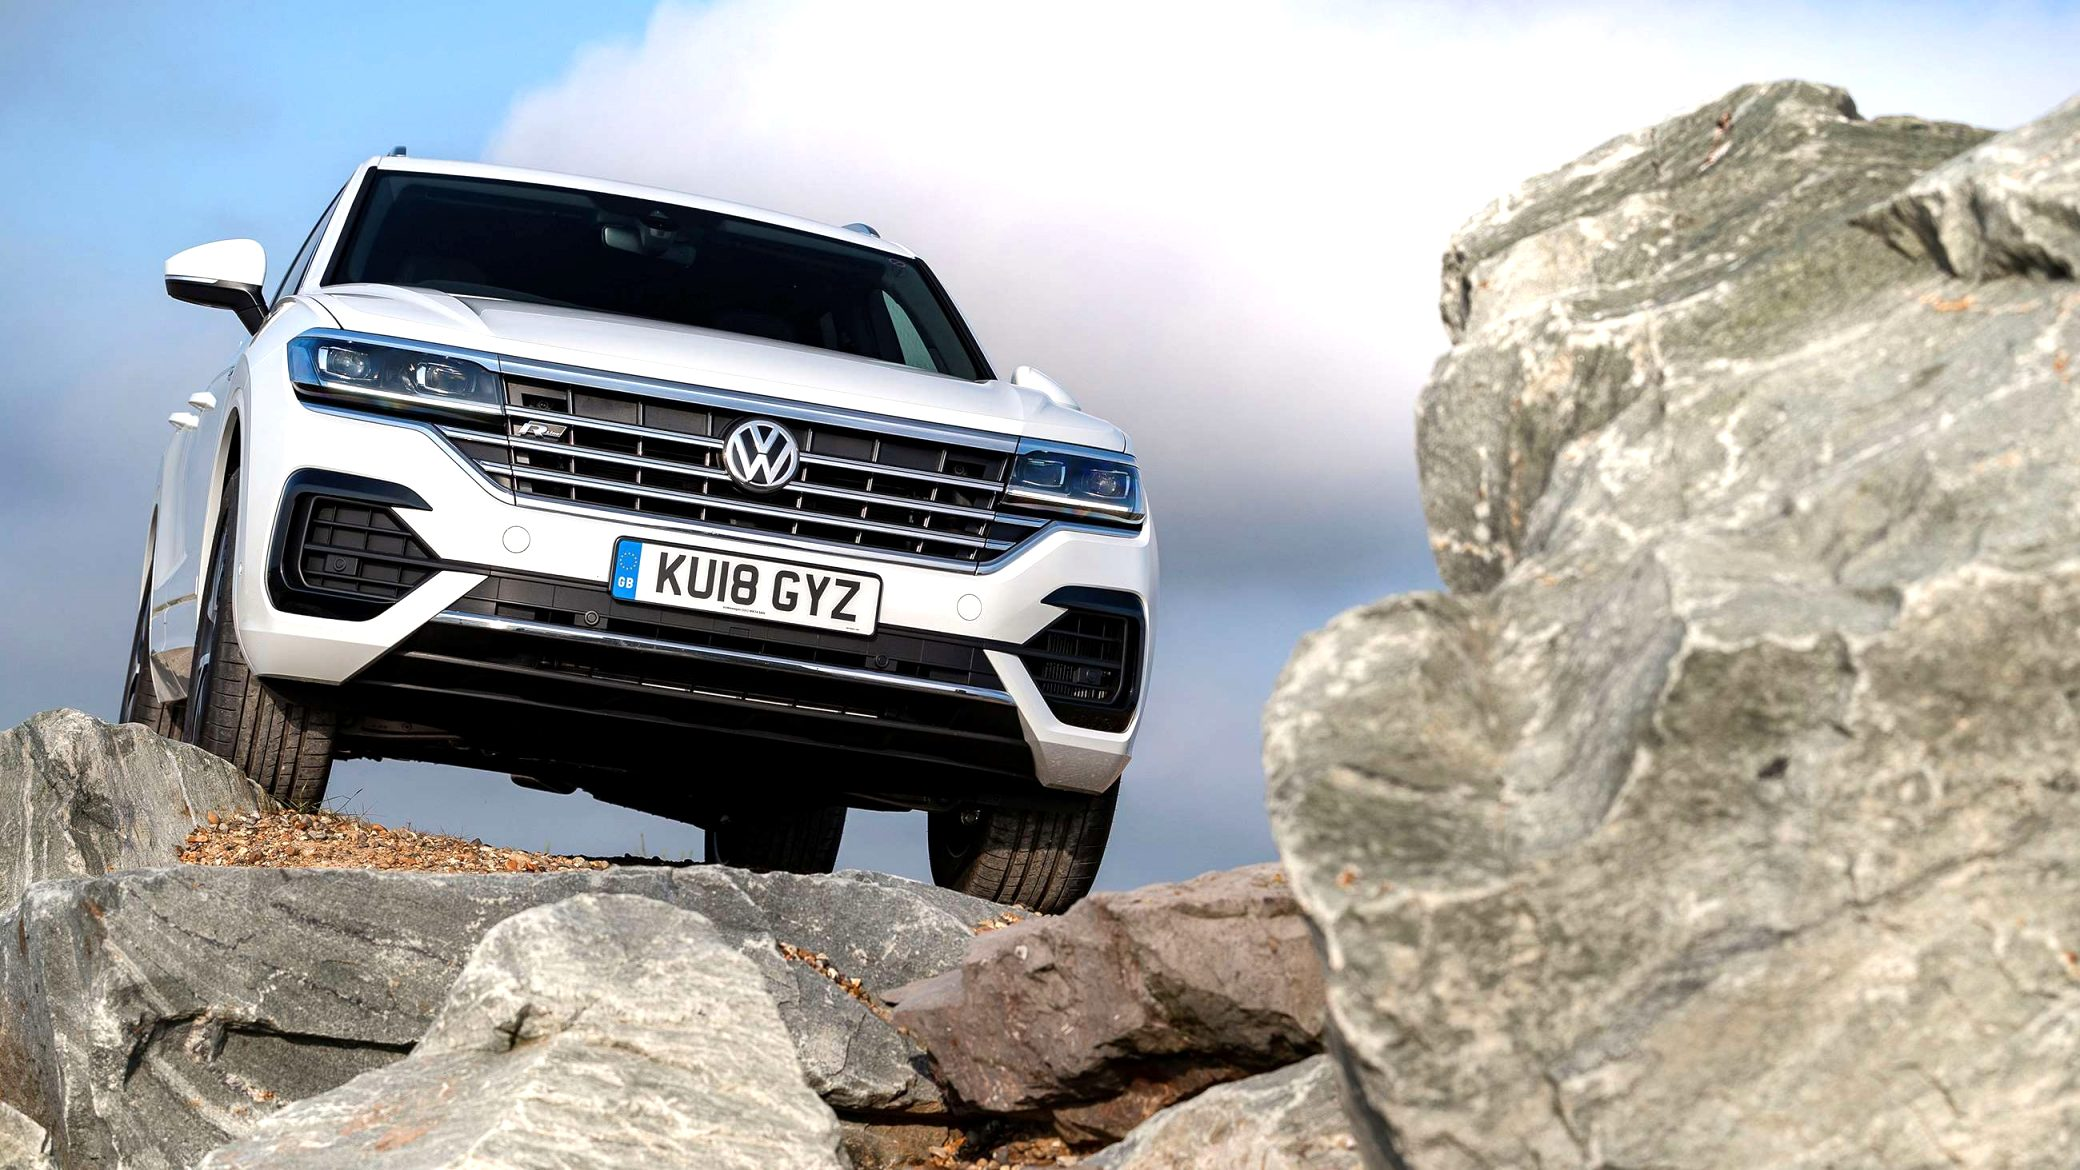 volkswagen touareg 2021 price in qatar Concept and Review